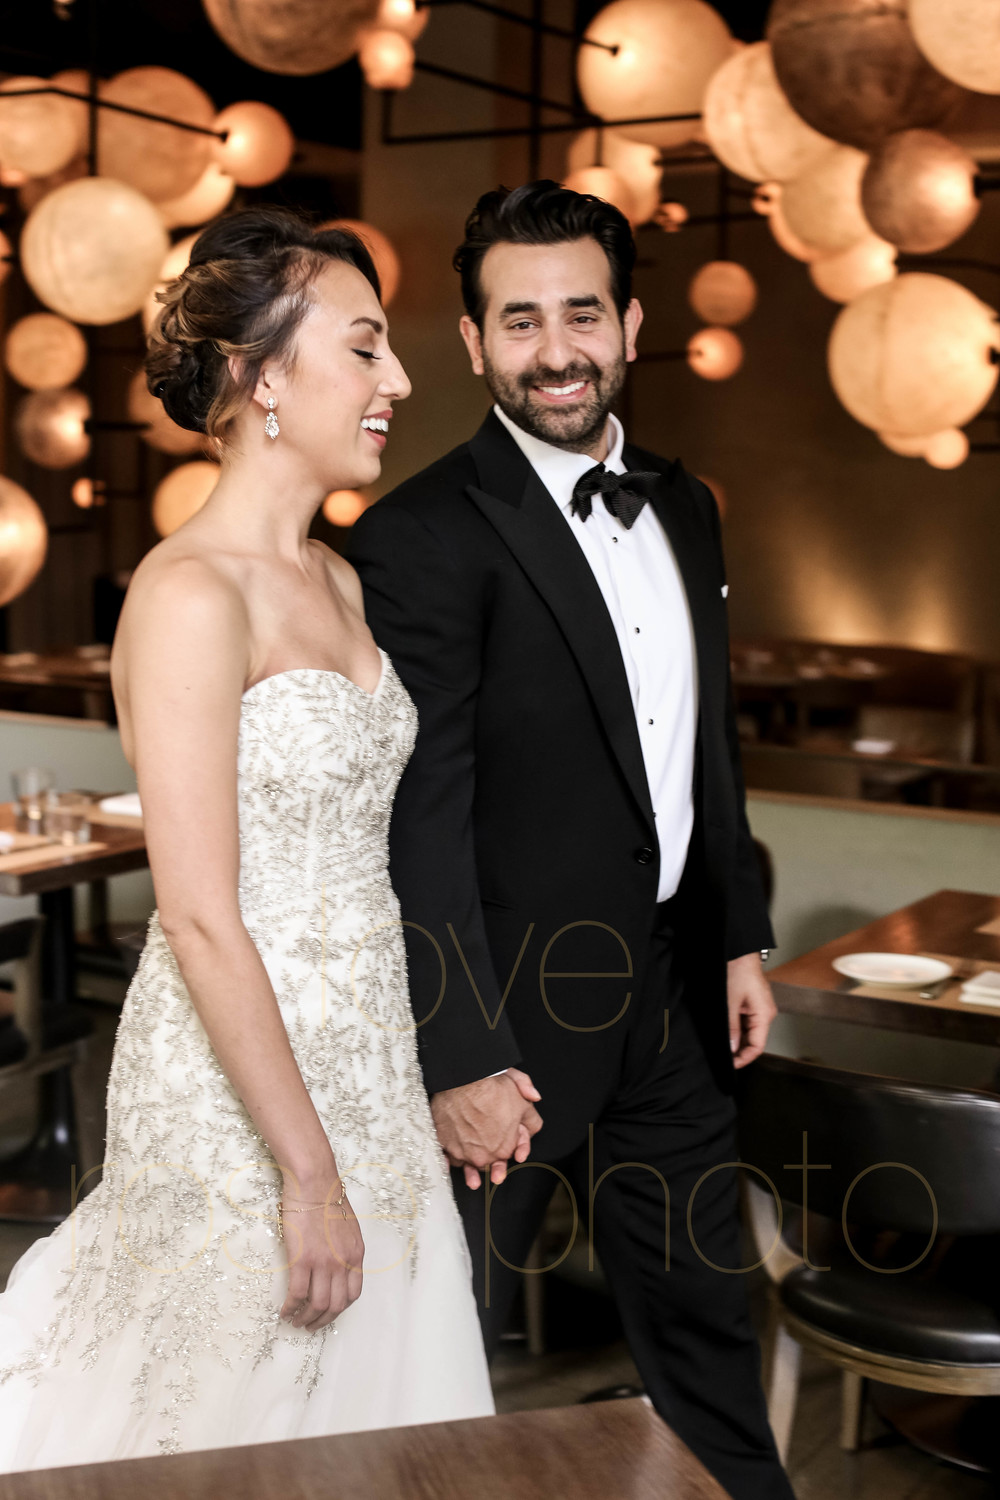 ornella + medhi gold coast west loop chicago wedding 3 arts club nelcotte rm champagne summer modern luxury wedding-20.jpg